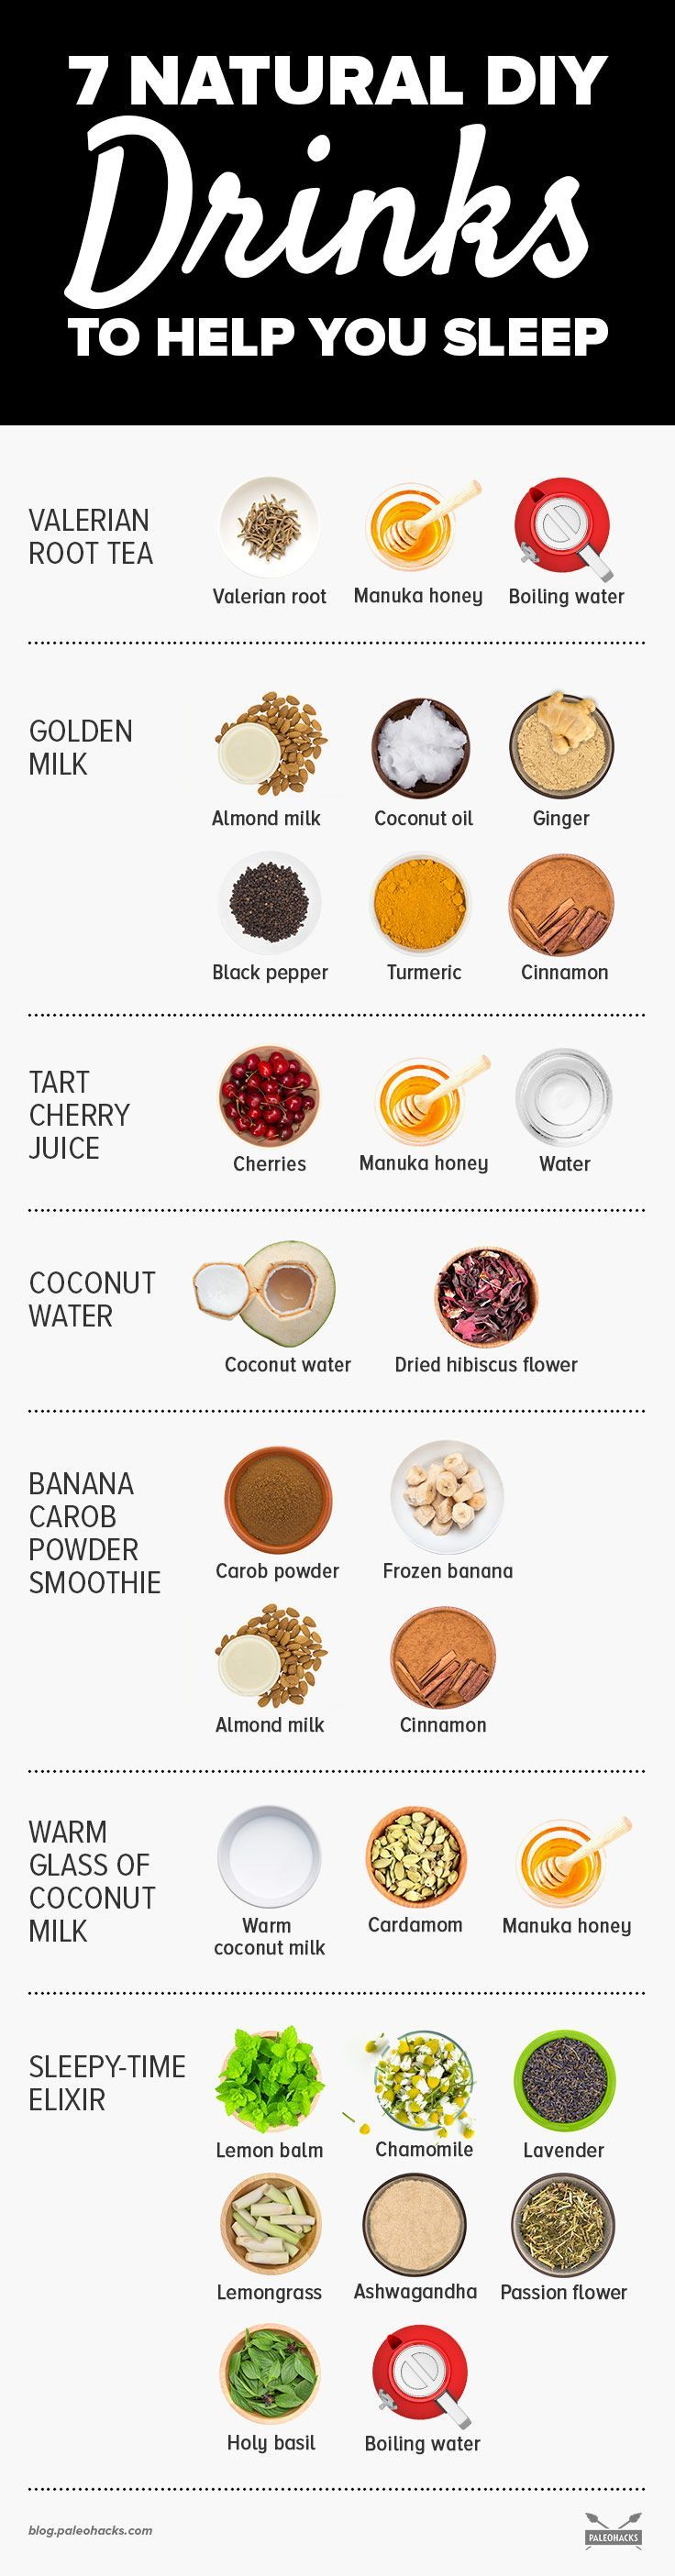 Trouble falling asleep? While you know the importance of sleeping,  it can be easier said than done. Here are natural DIY drinks to help  you achieve quality sleep to help you feel energized in the morning. Get the recipe here: http://paleo.co/sleepdrinksrcp